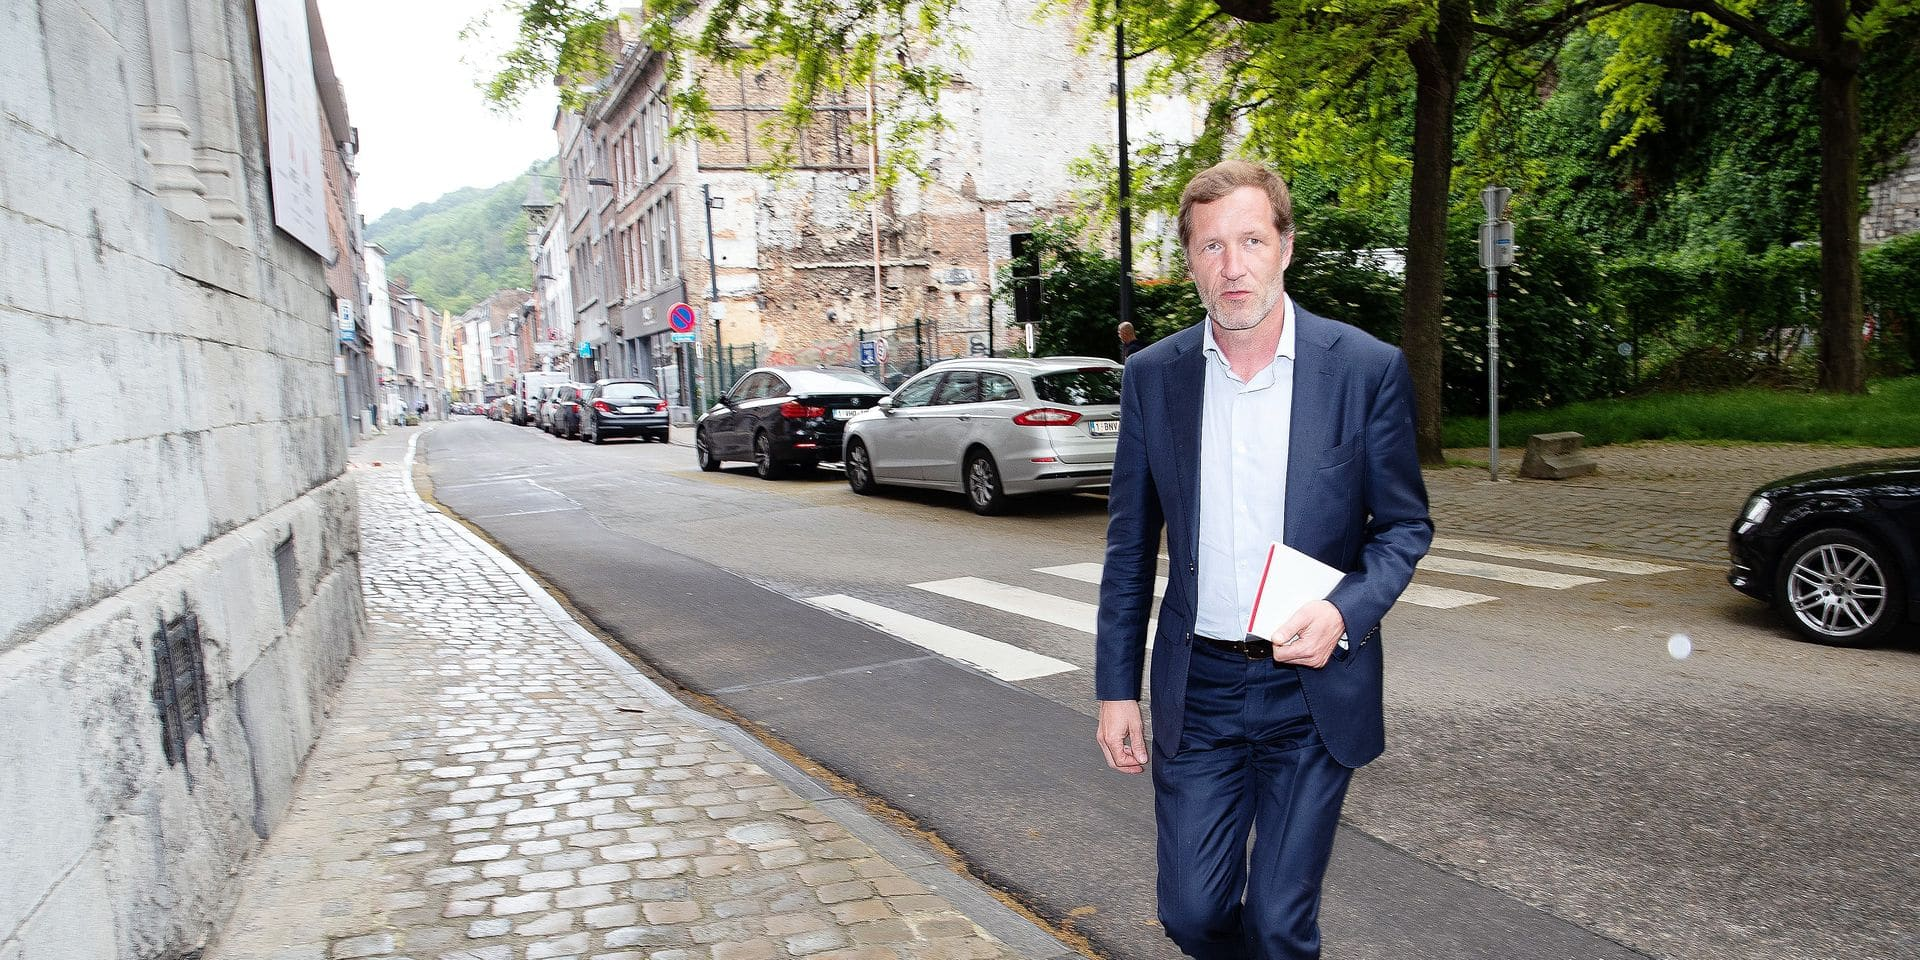 Former Walloon Minister President Paul Magnette arrives for negotiations to form a new Walloon Government, Monday 03 June 2019 in Namur, after last week's elections. BELGA PHOTO BRUNO FAHY